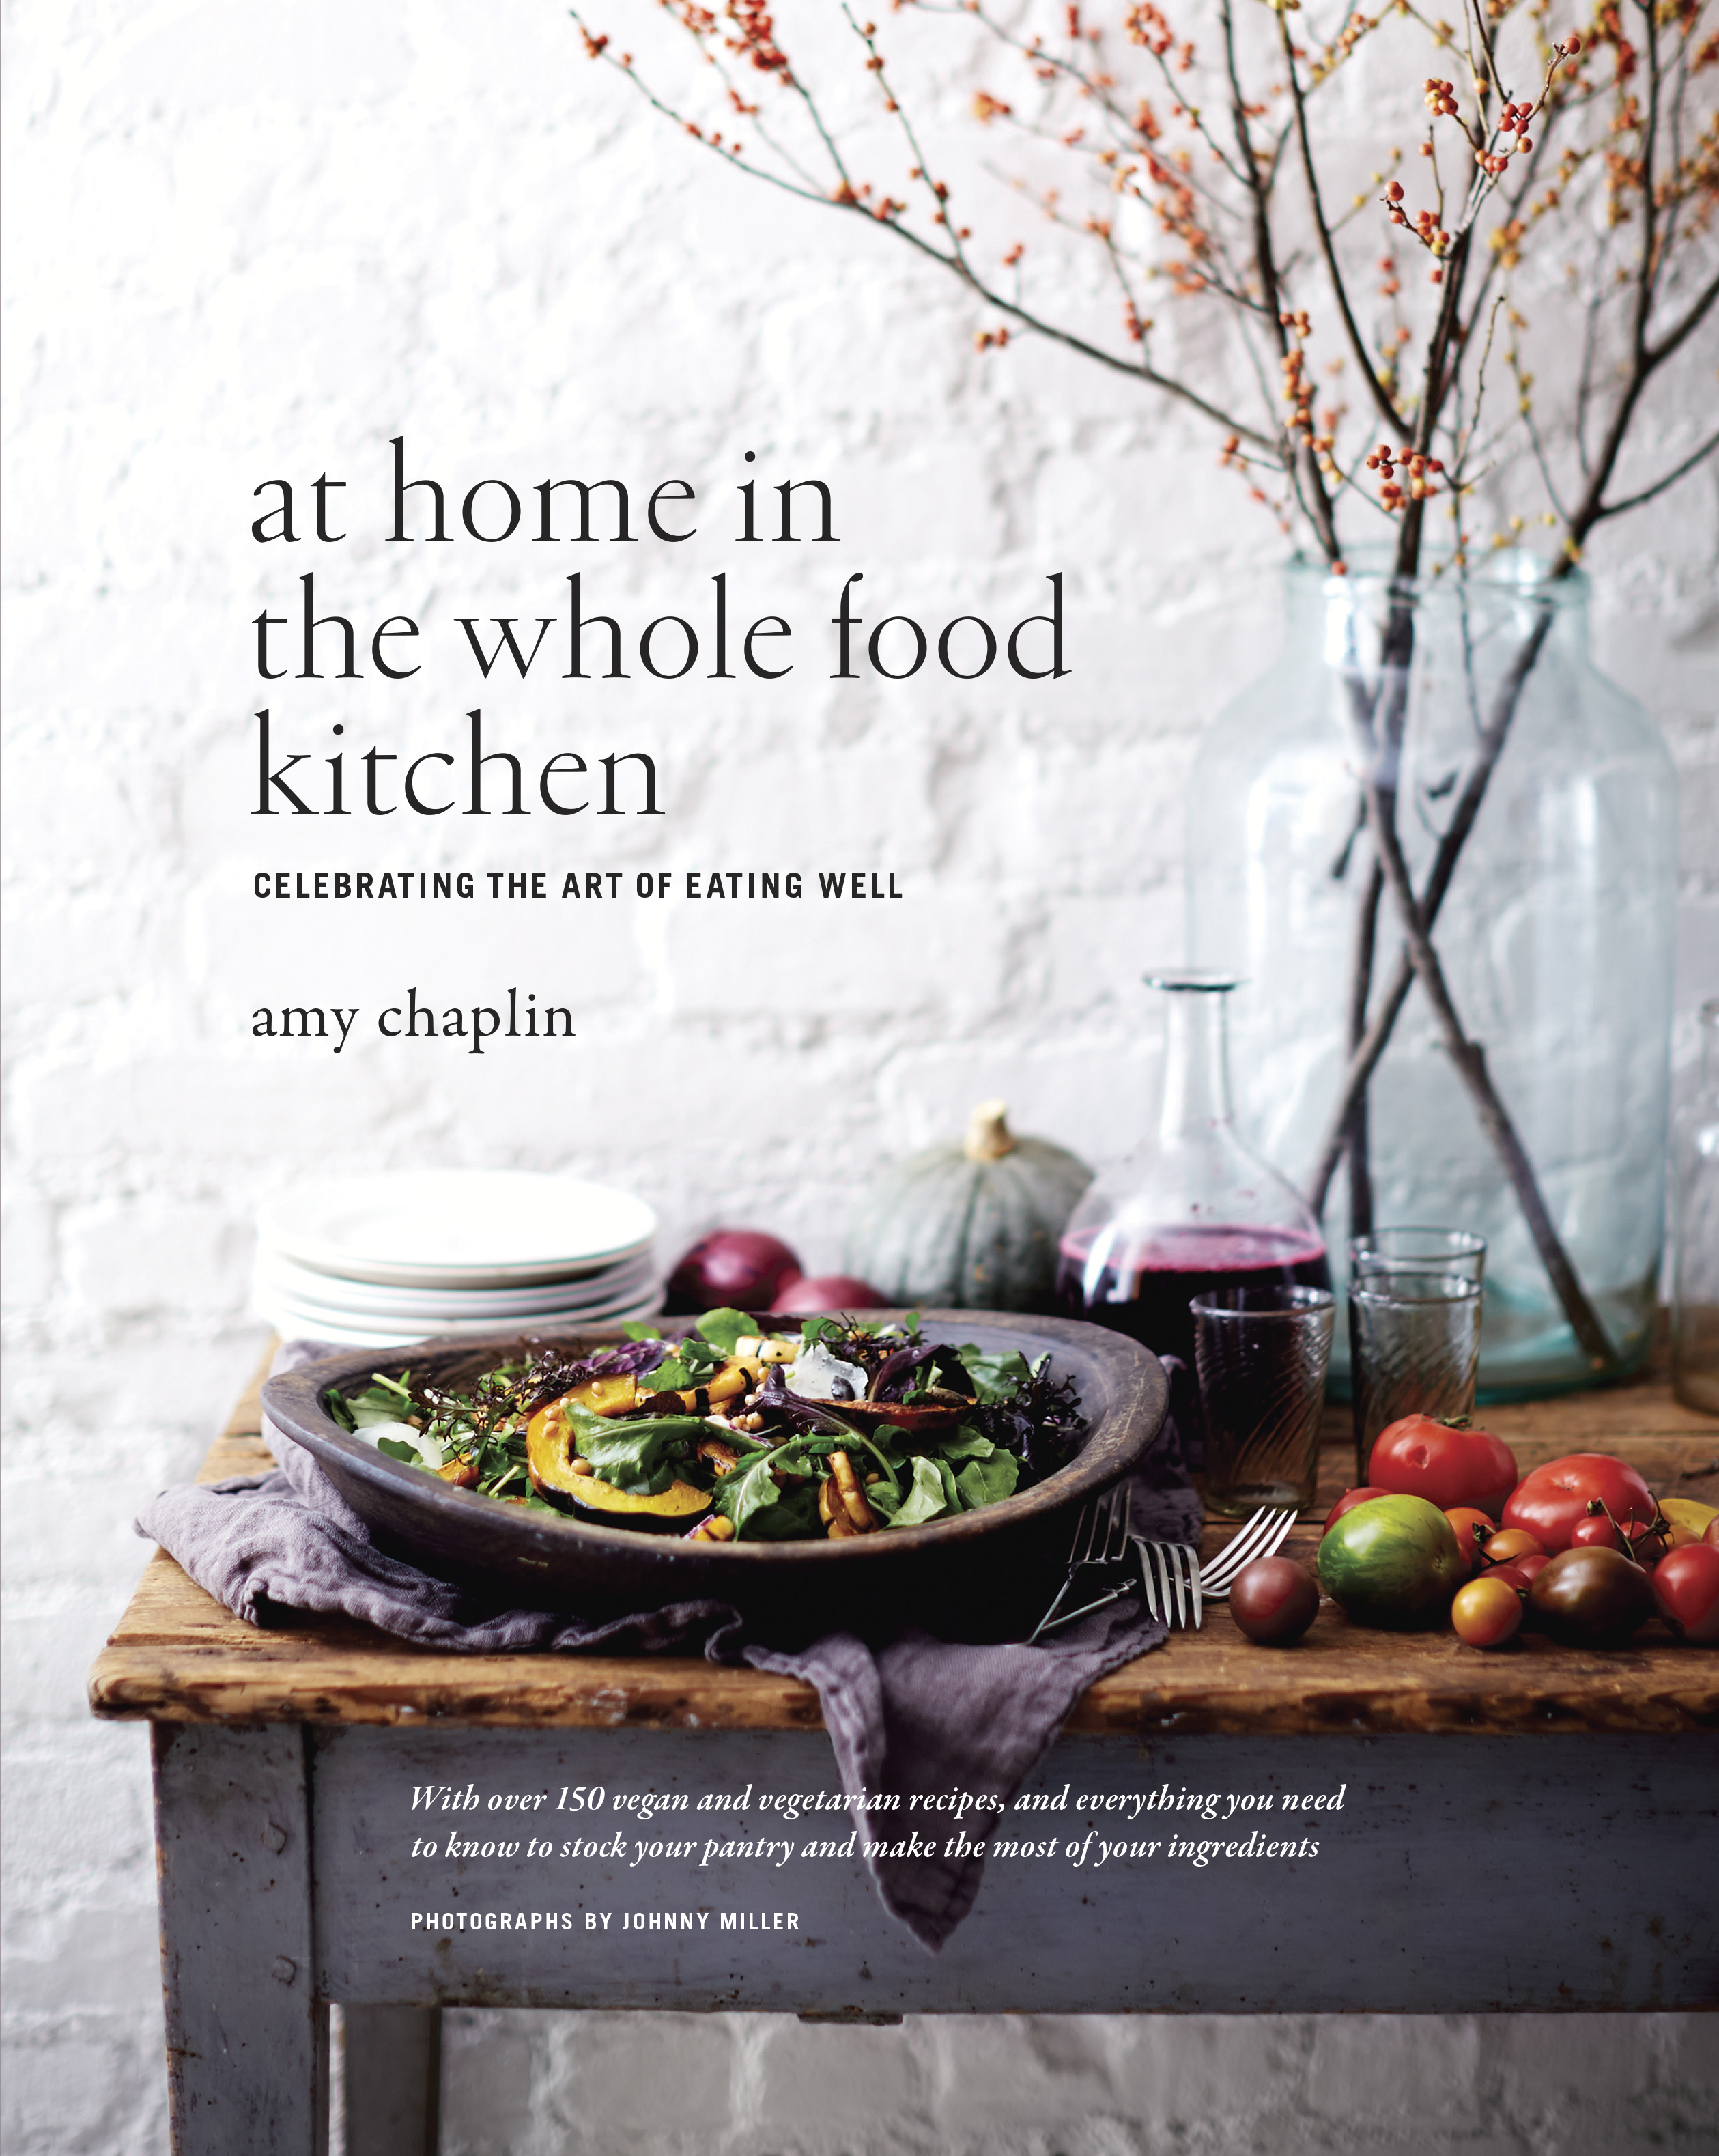 Cookbook Launch: At Home in the Whole Food Kitchen by Amy Chaplin, with Jennifer Aaronson